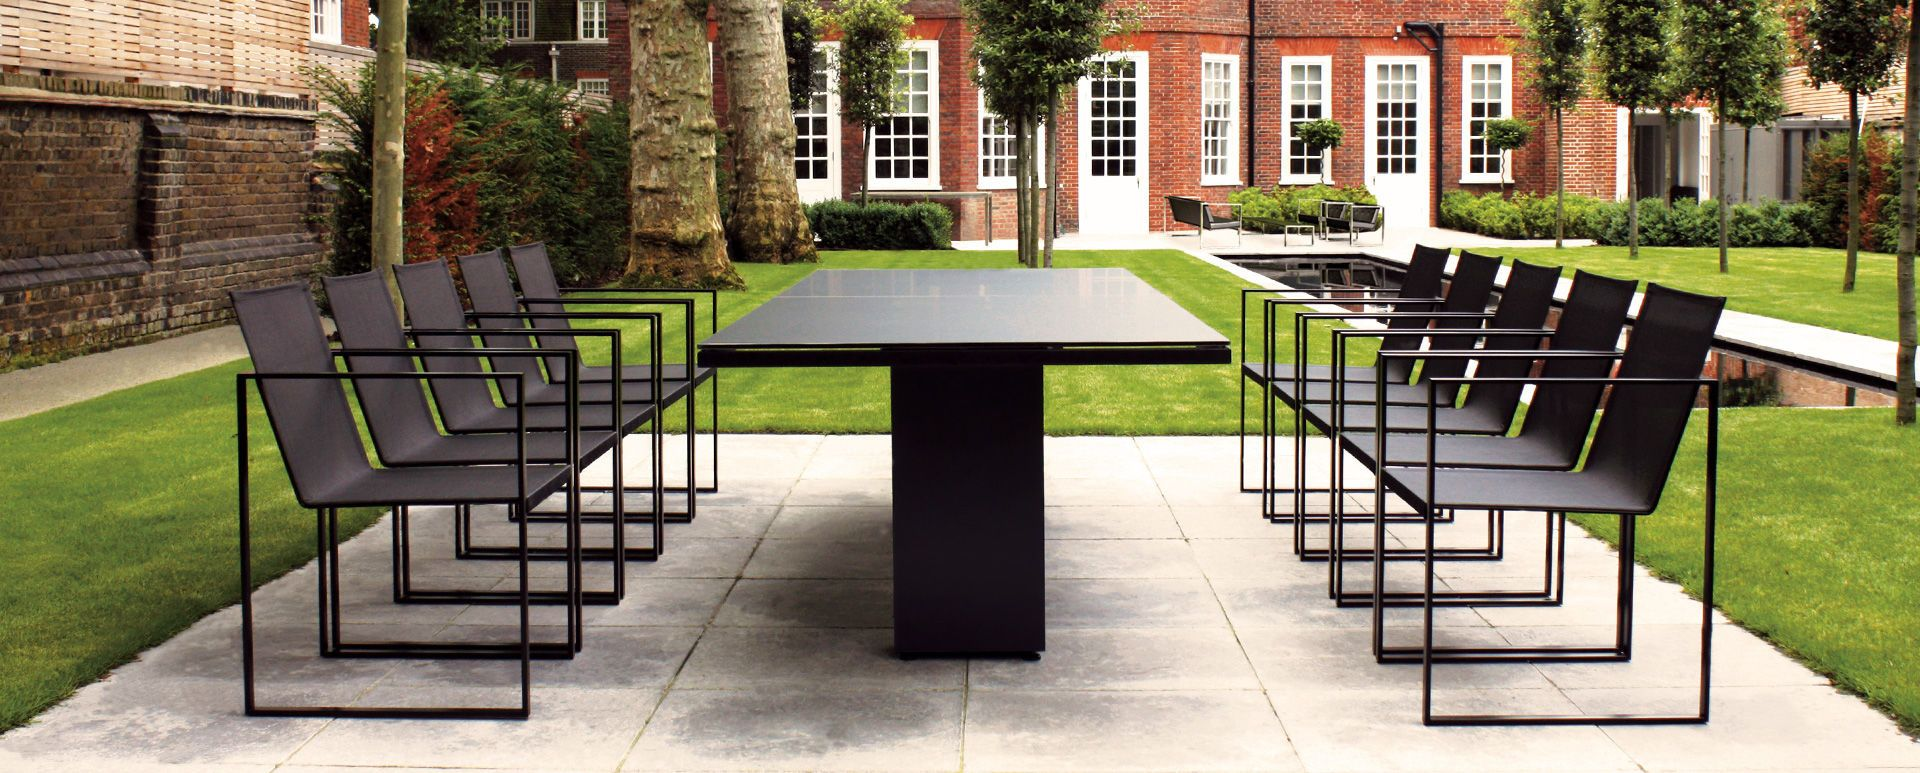 Ordinaire Dutch Outdoor Furniture   Best Furniture Gallery Check More At  Http://cacophonouscreations.com/dutch Outdoor Furniture/